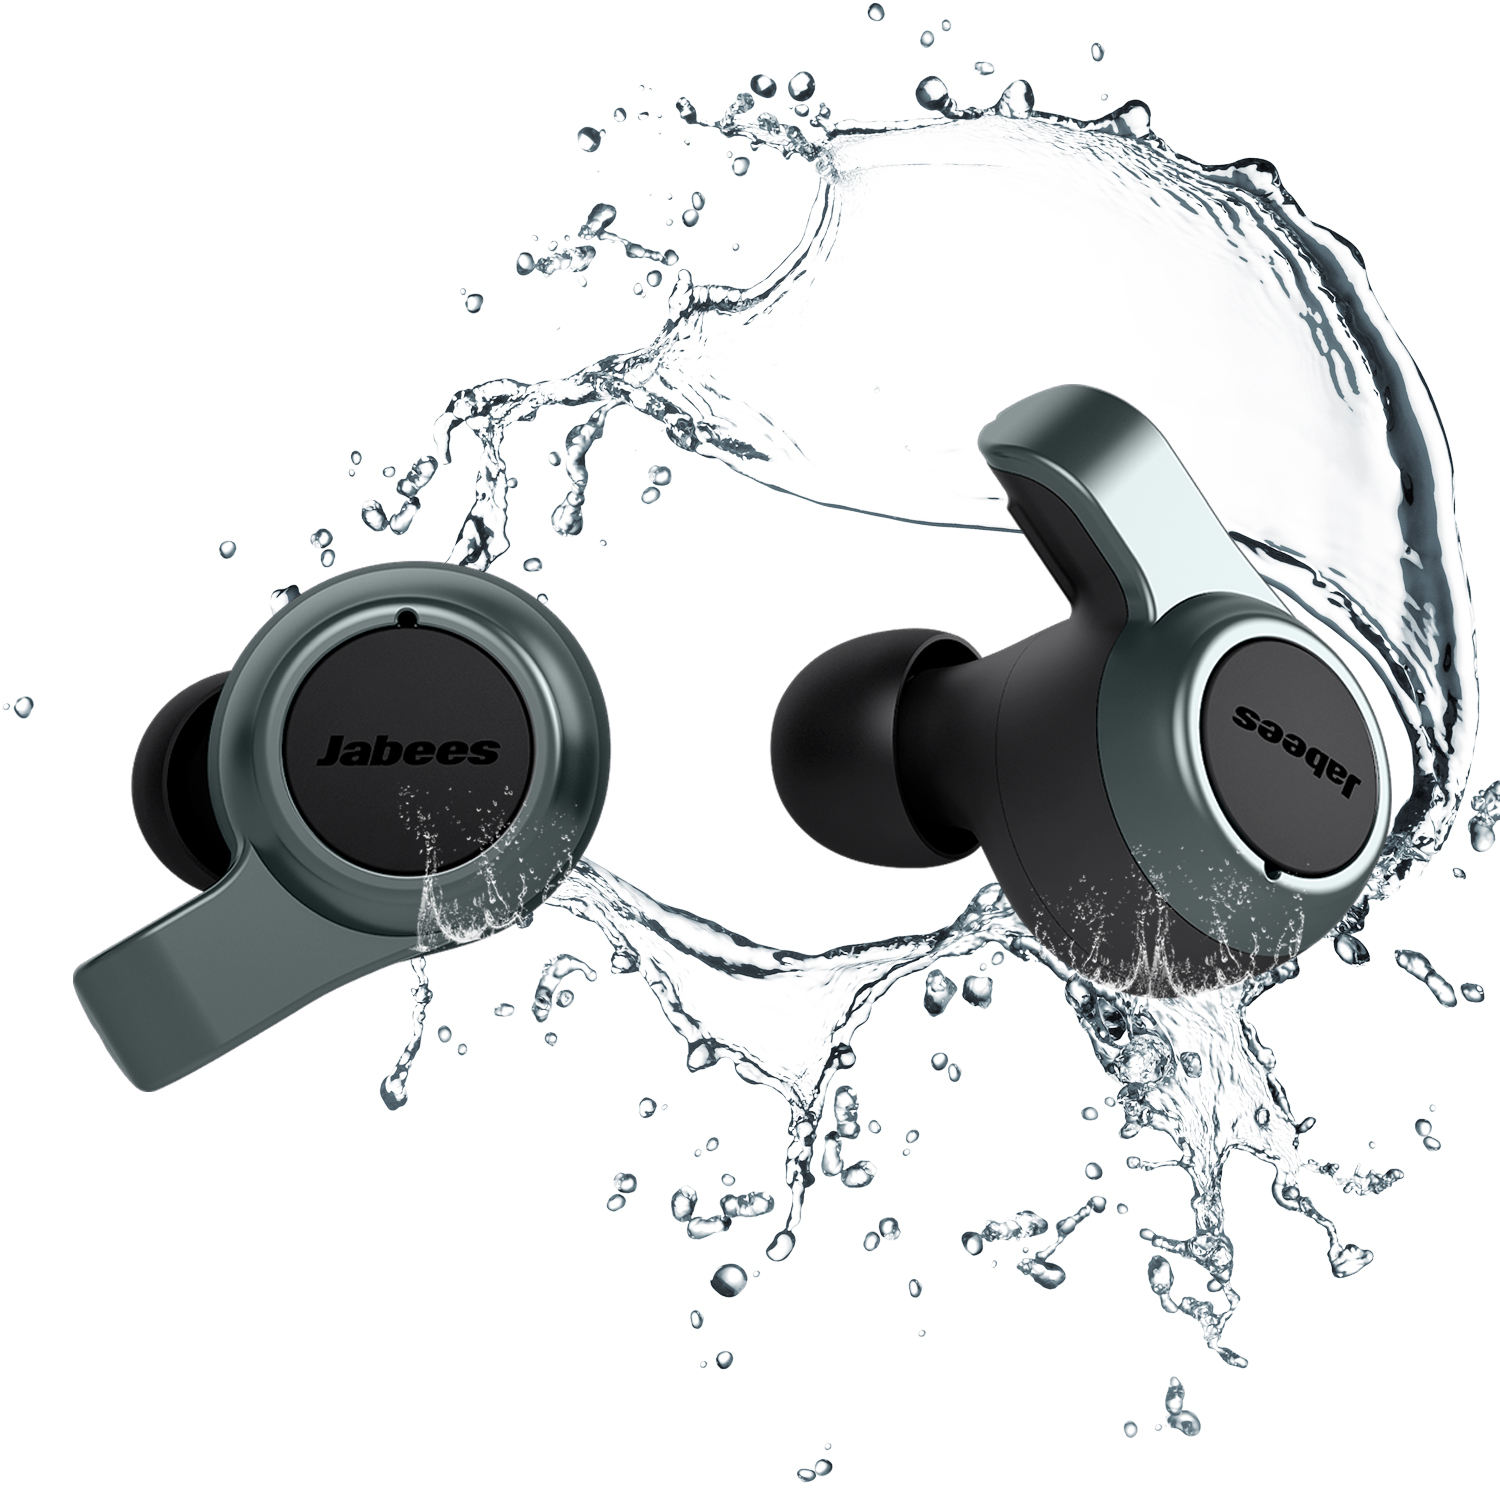 Firefly.2 Earbud Bluetooth IP67 Tahan Air TWS, Earphone Nirkabel dengan Mode Transparan